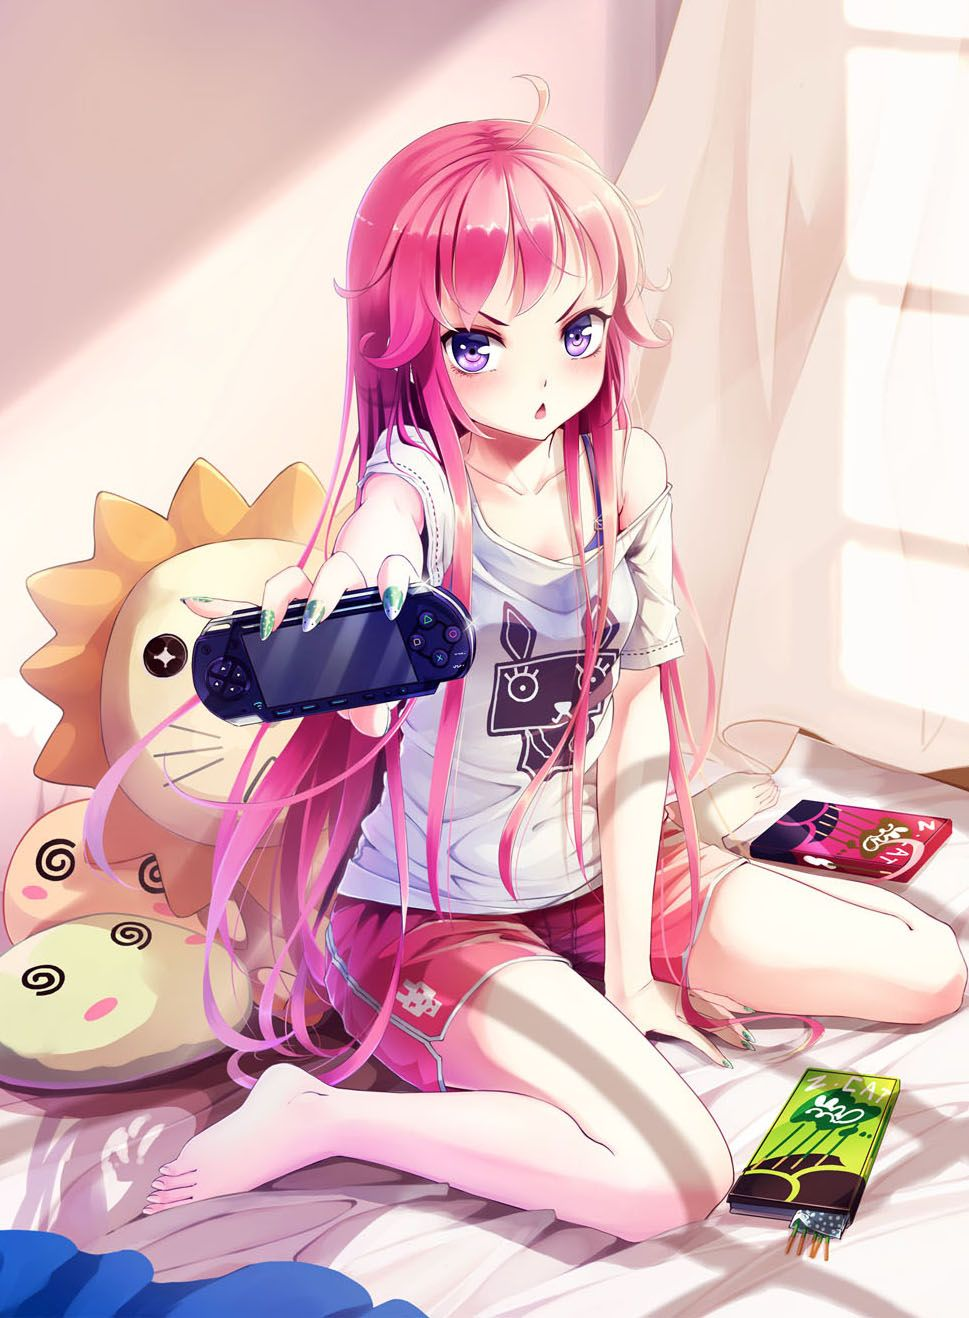 Anime girl with pink hair purple eyes shorts stuffed animals pocky electronic device